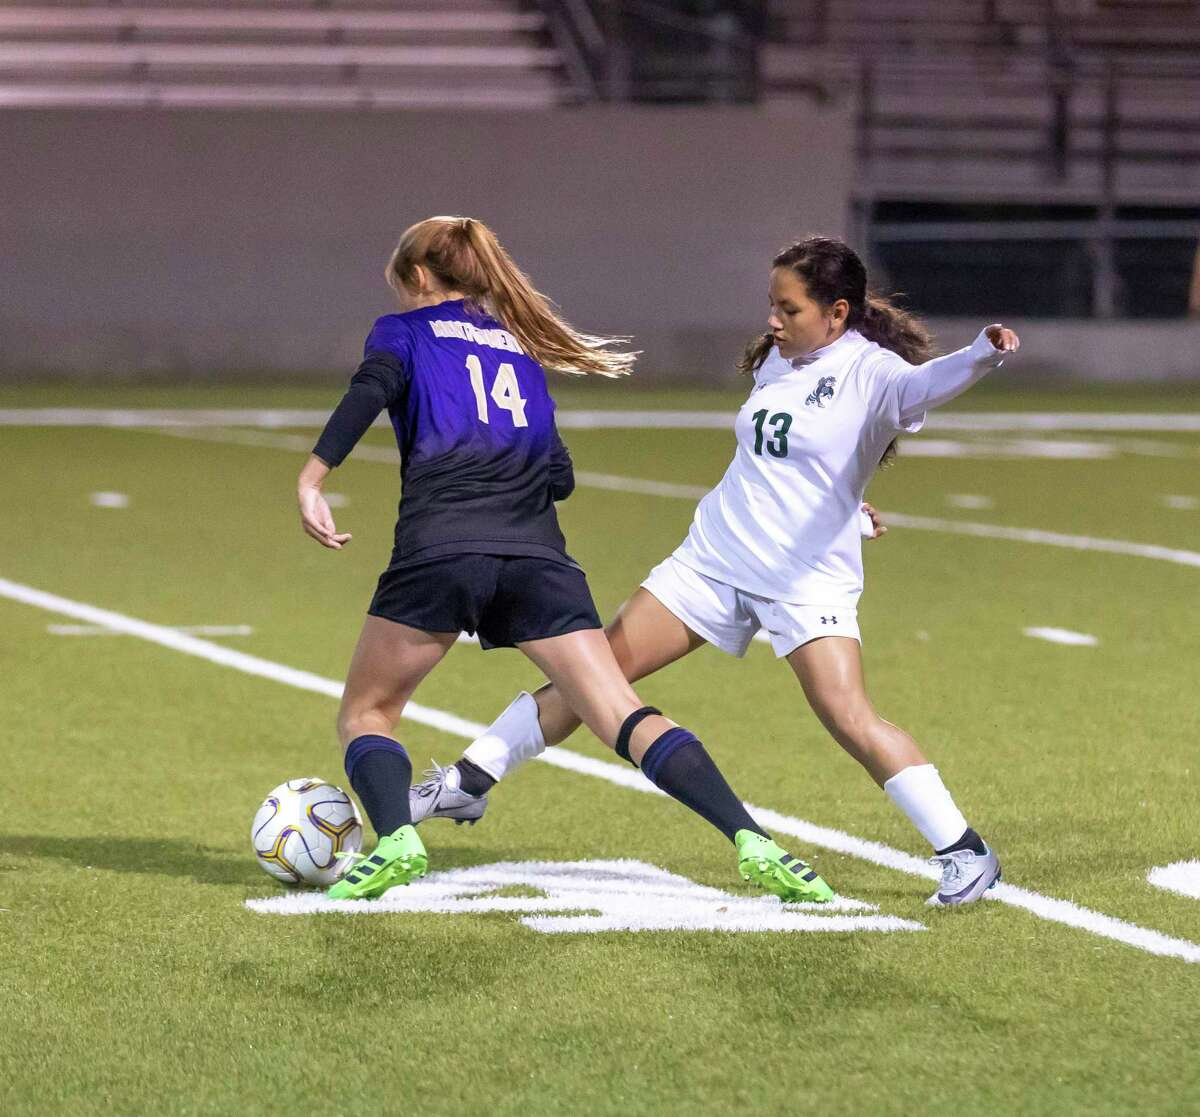 Montgomery forward Jenna Attebery (14) and Huntsville midfielder Eva Zamudio (13) fight for control of the ball in a District 20-5A match in Montgomery, Friday, Jan. 31, 2020.